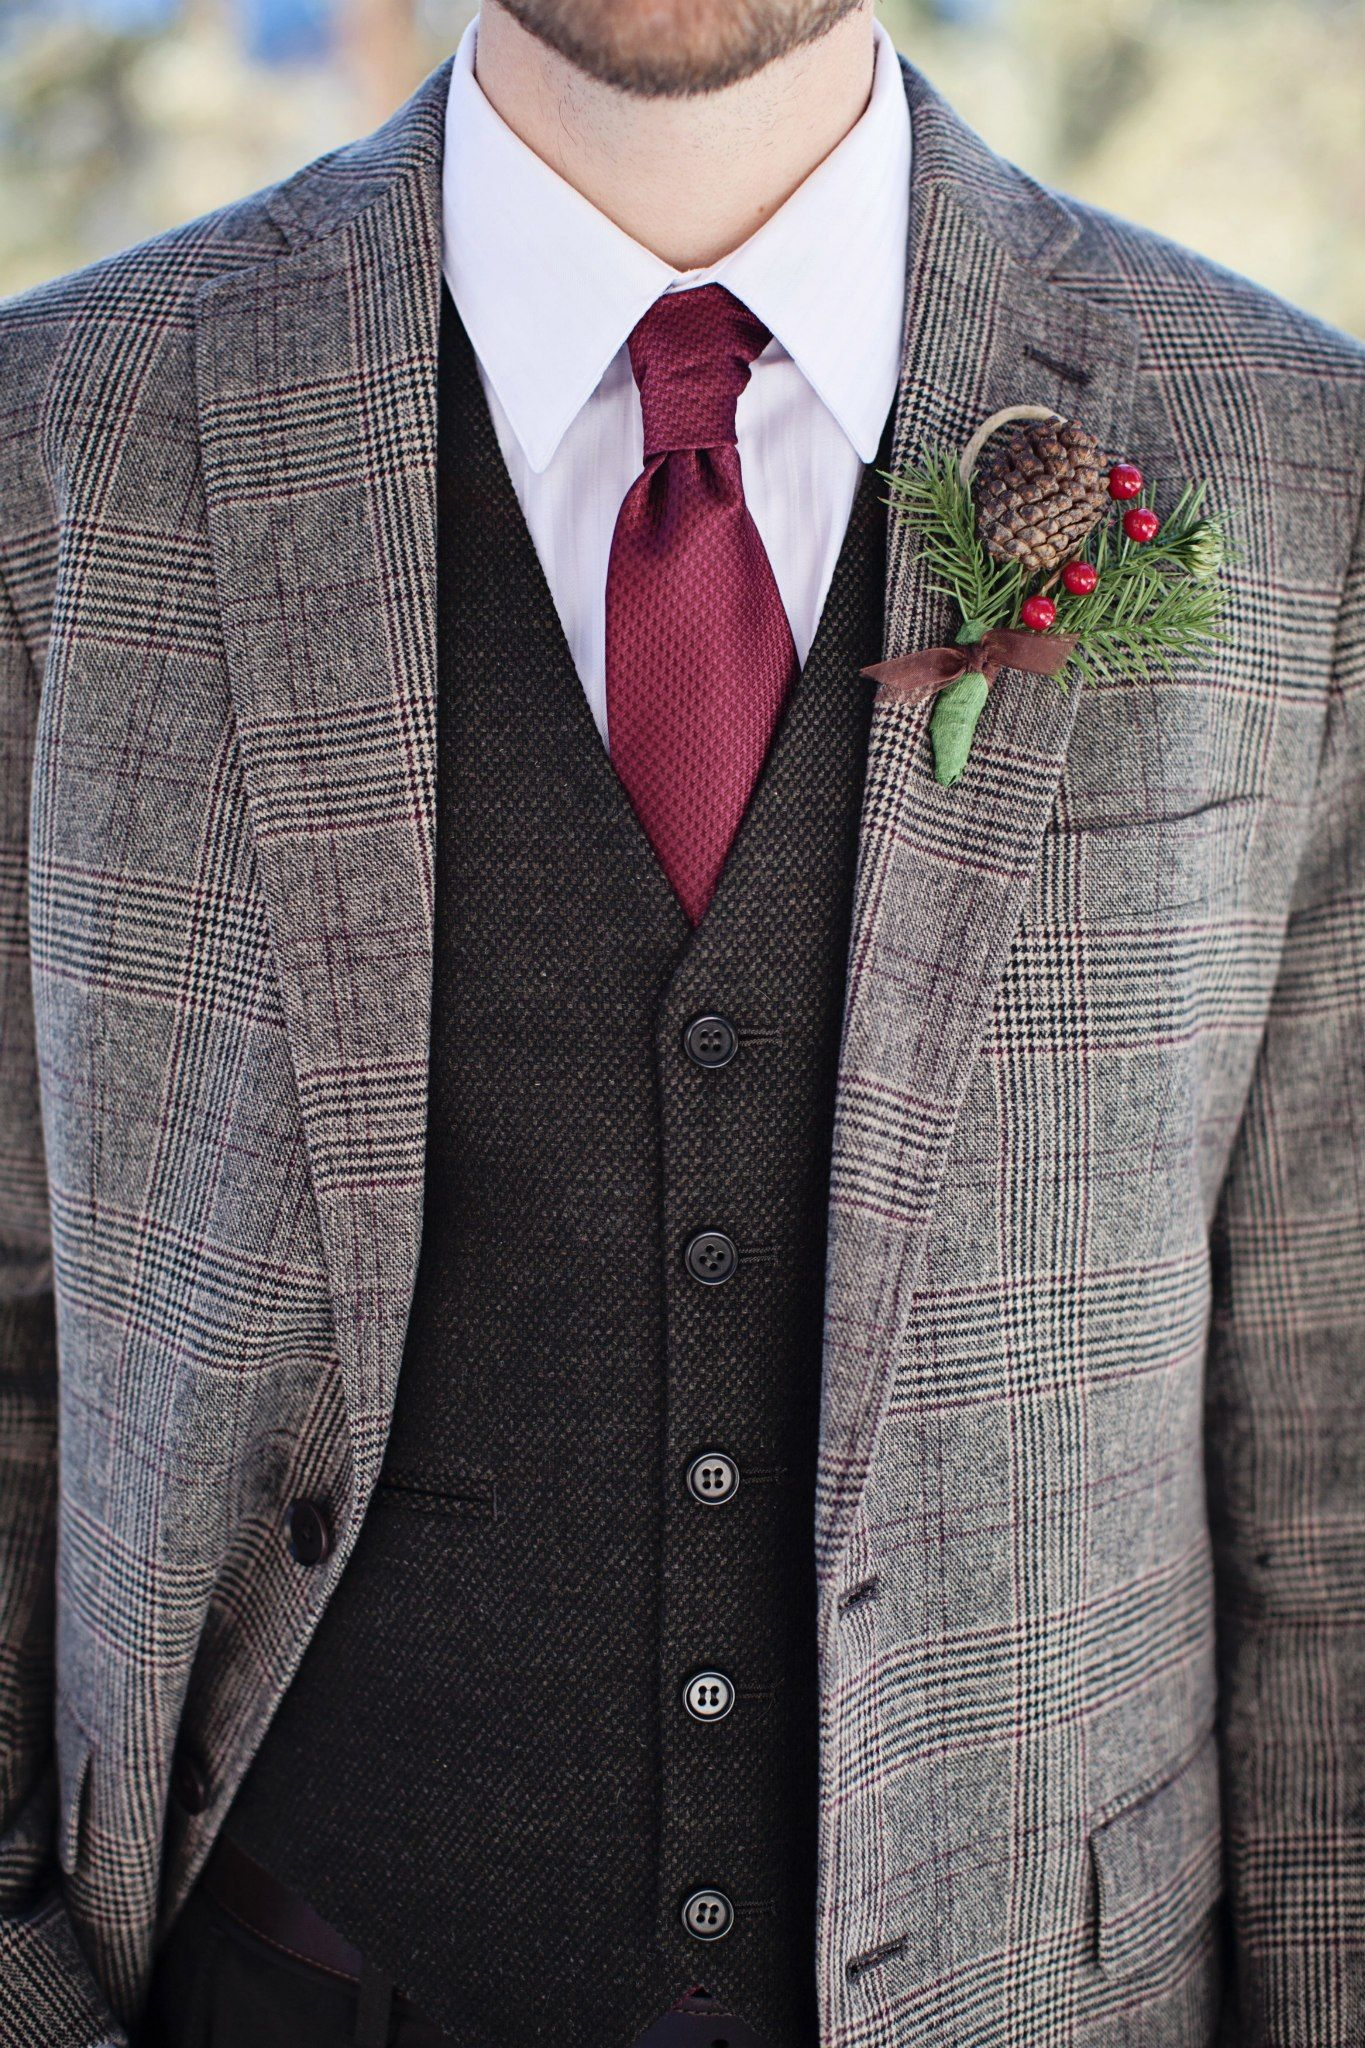 21 Patterned Suits To Dress Up Your Groom S Look Winter Wedding